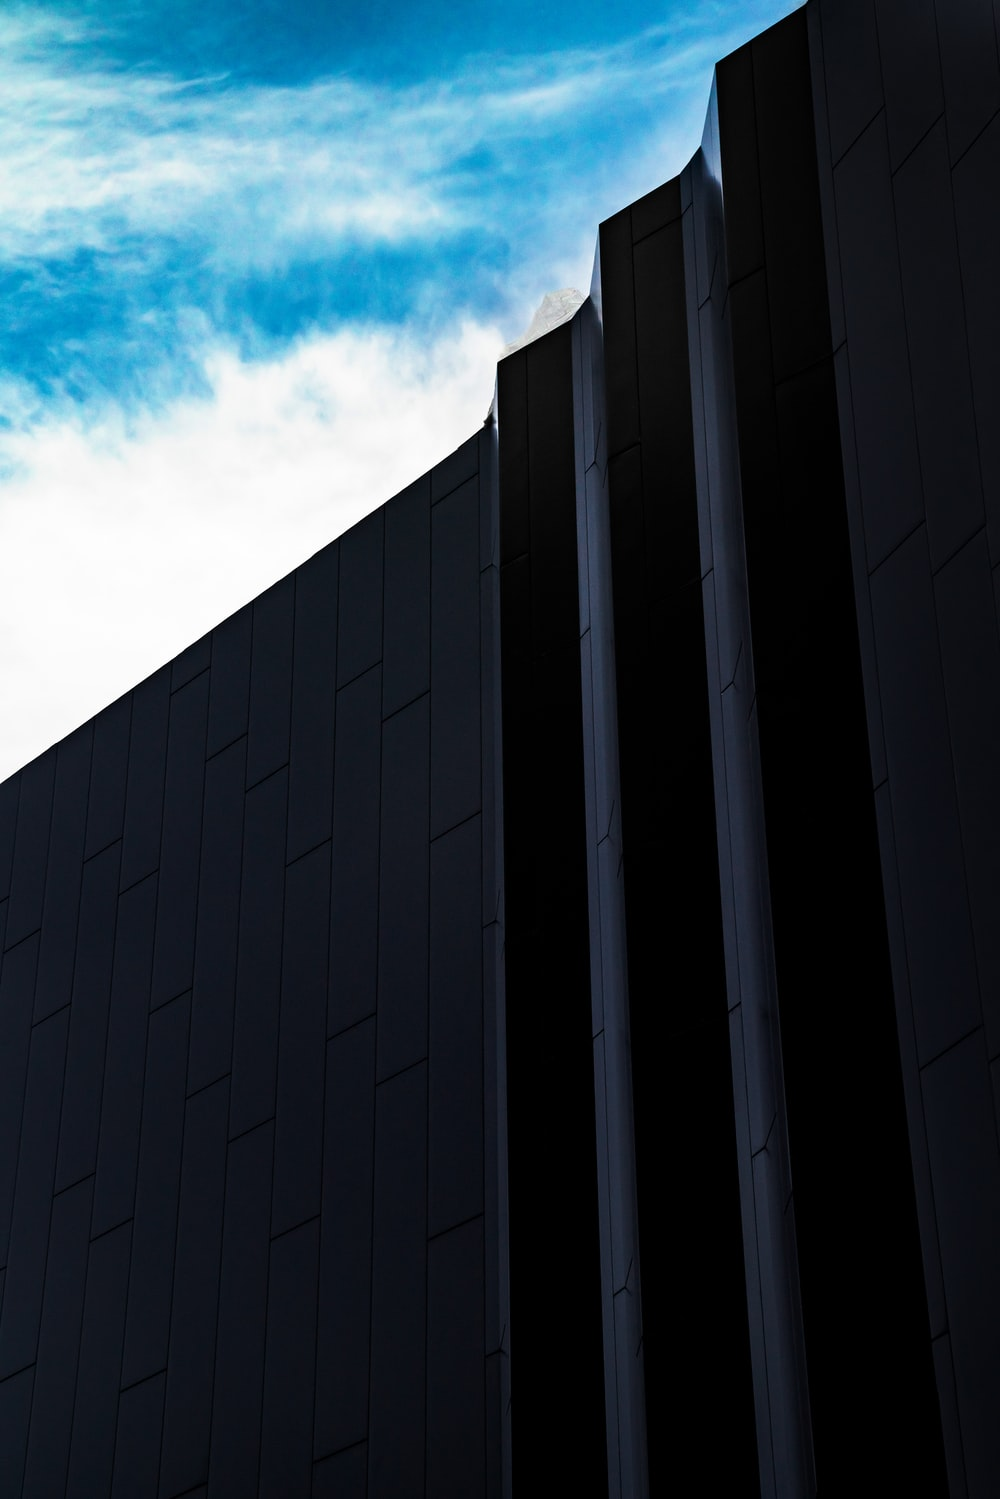 black concrete building under blue sky and white clouds during daytime